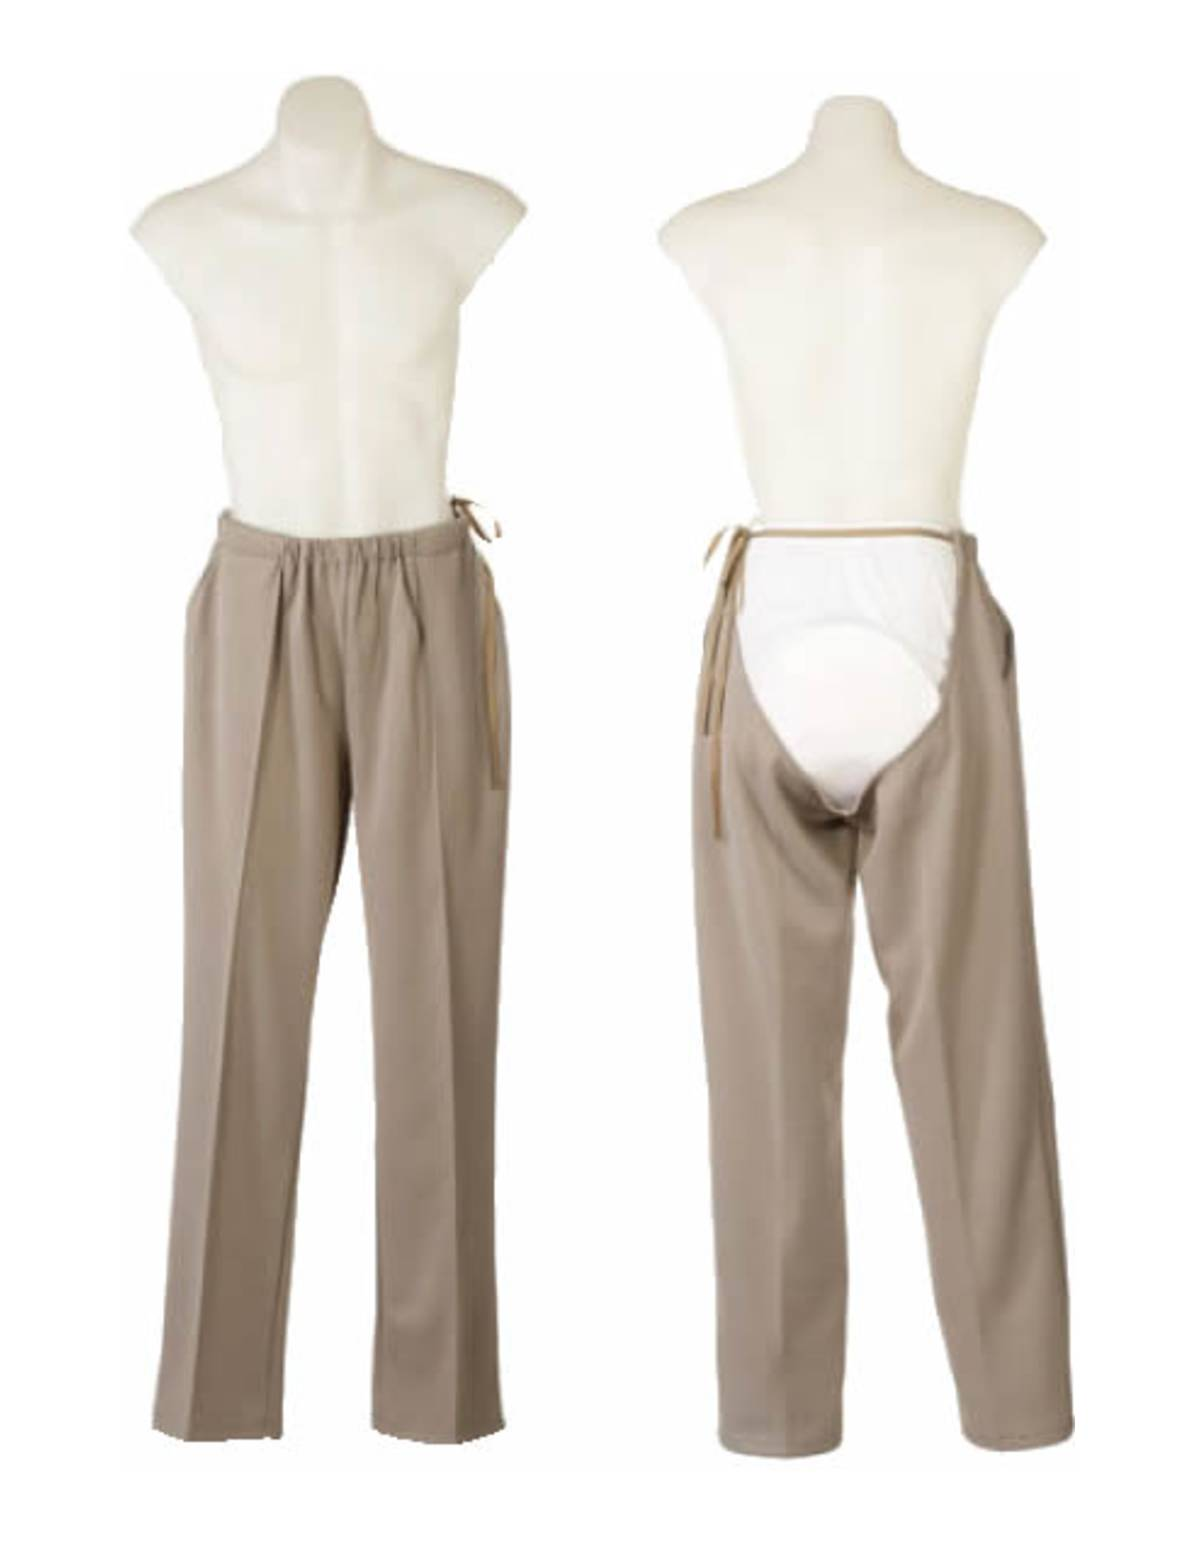 Compare Men`s Assistive Trouser Priced From $75.00